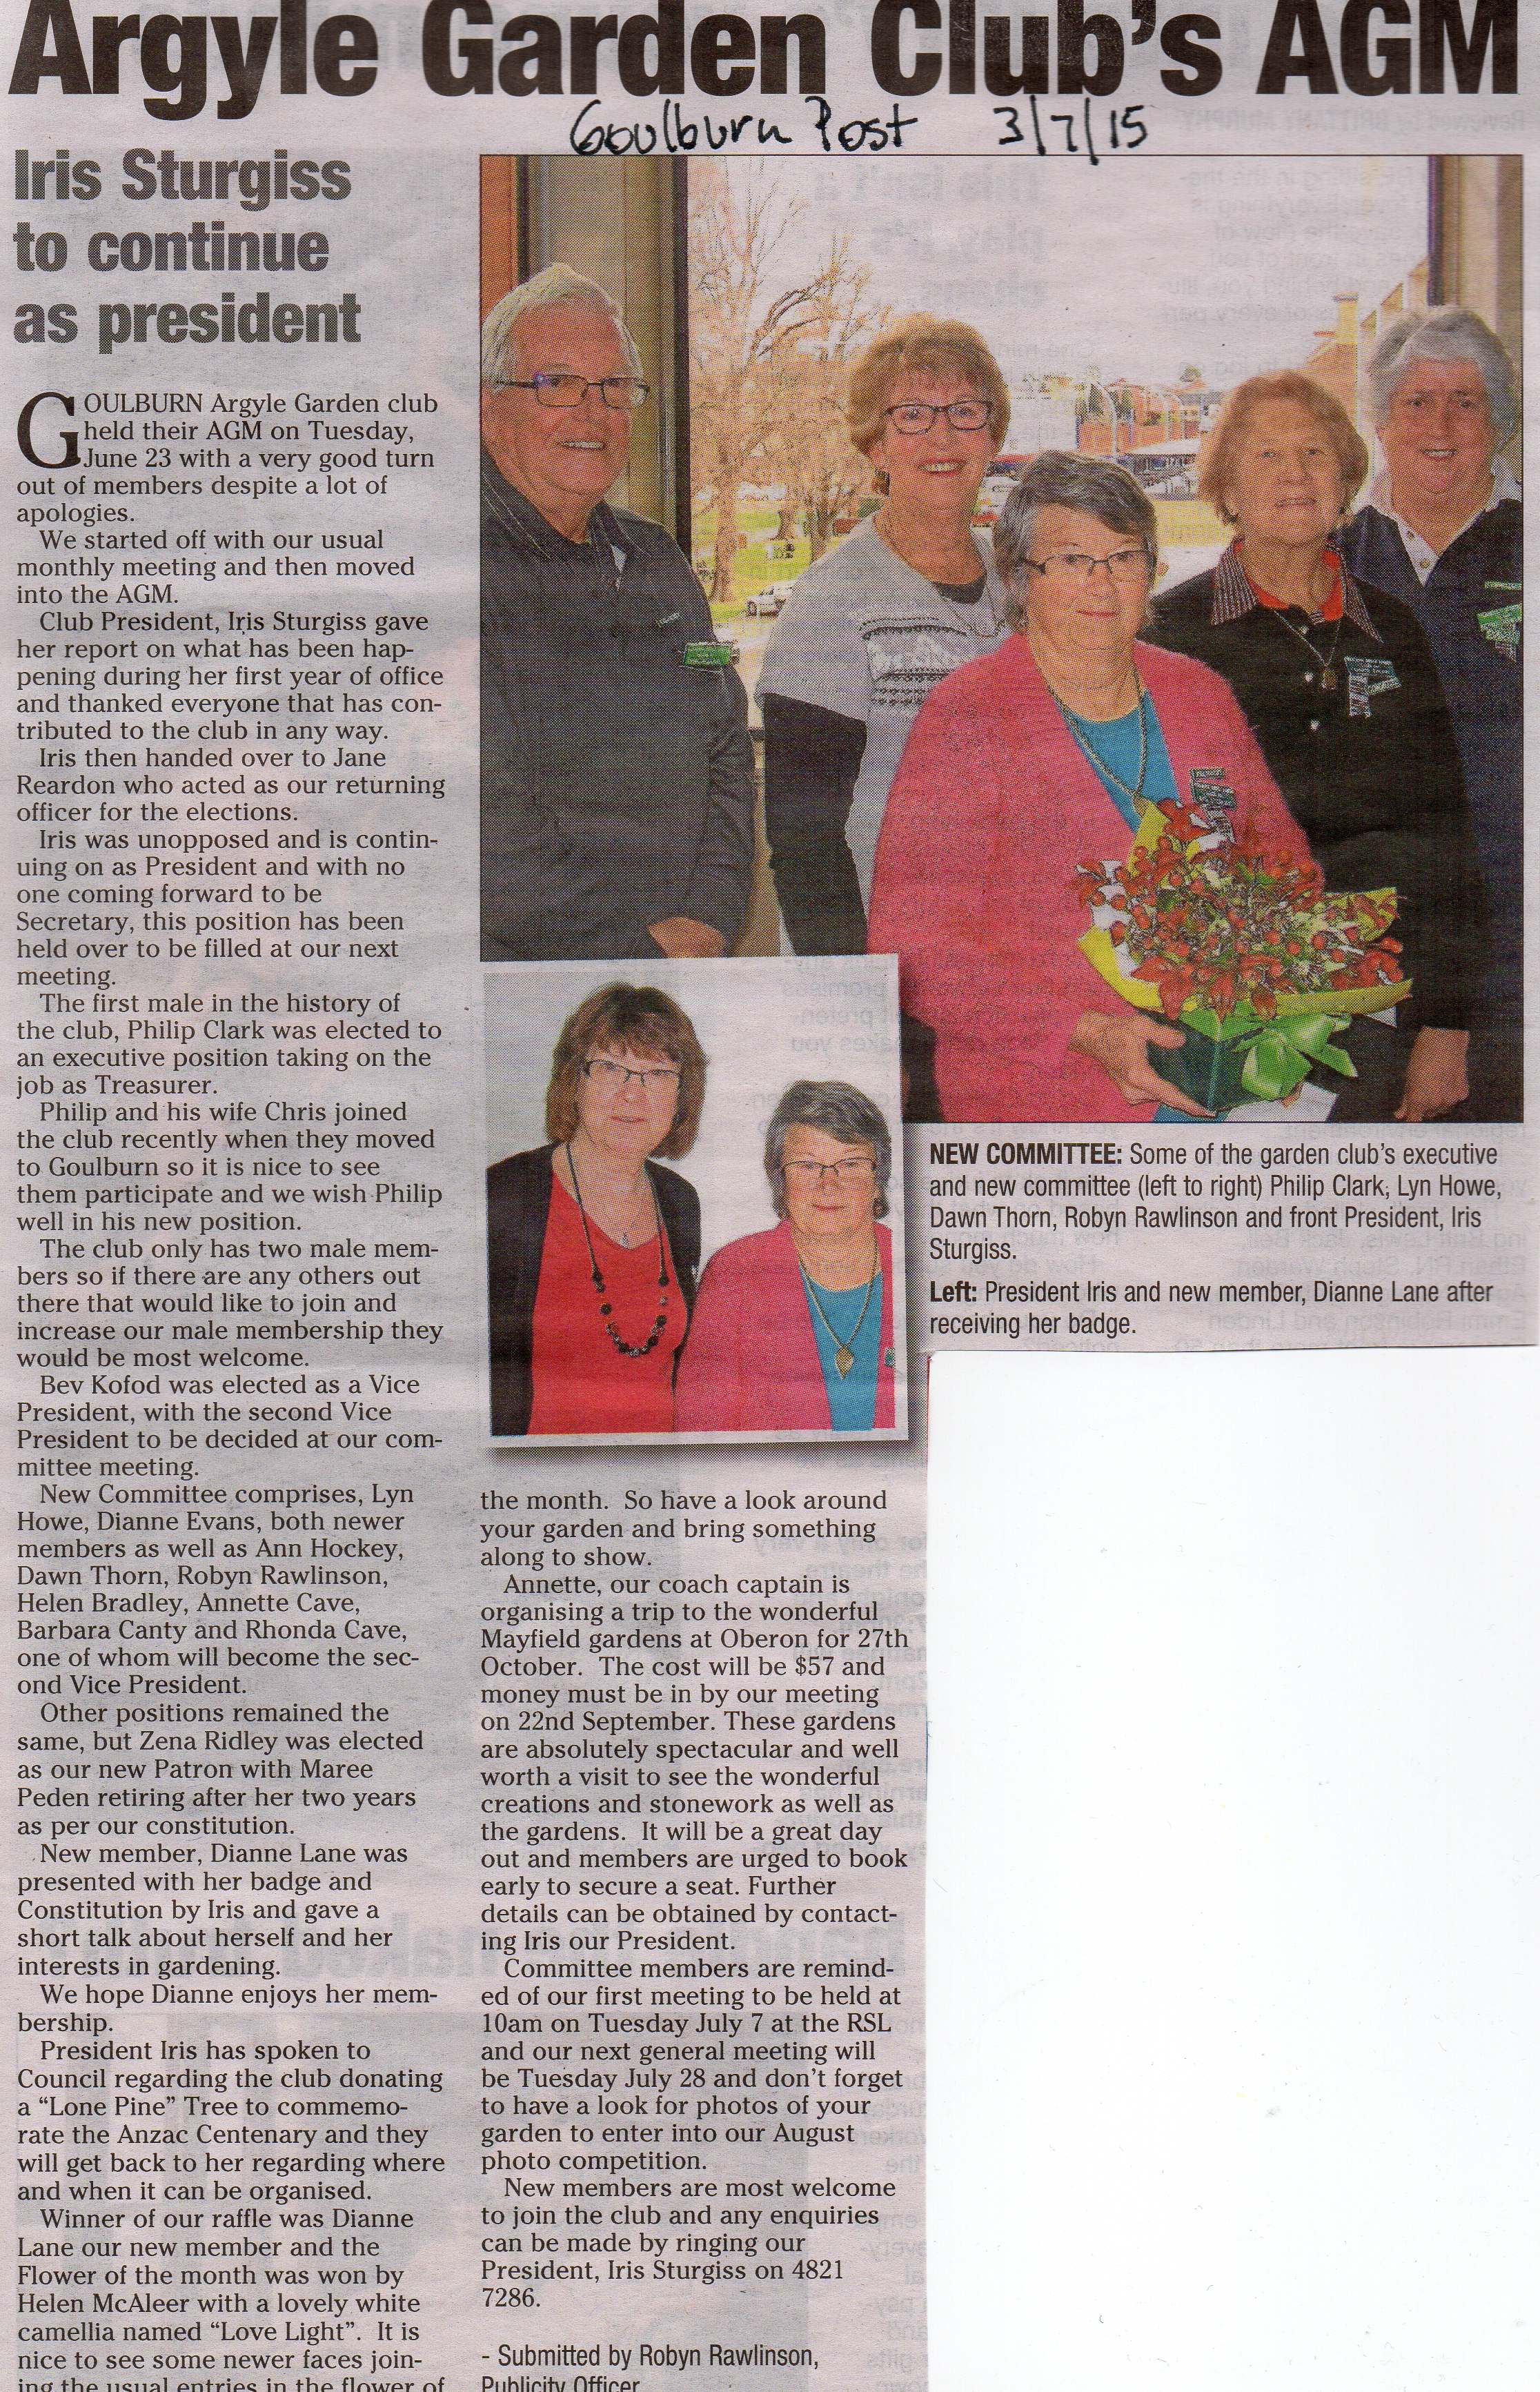 Goulburn Post wrote on 3/7/15